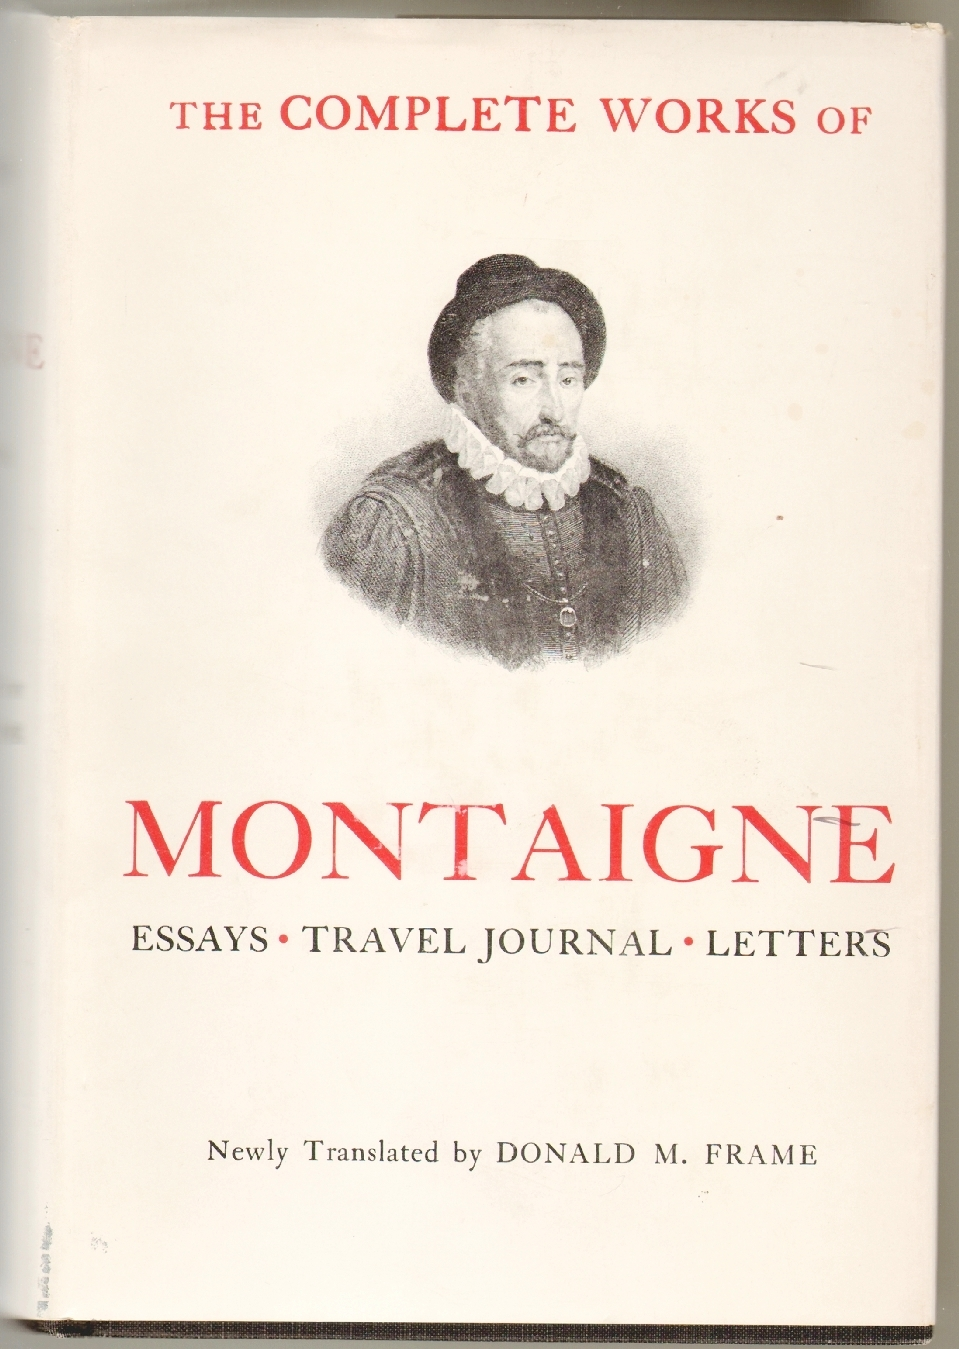 complete essay journal letter montaigne travel works Physician in a letter to one of the  de montaigne complete an essay on the  bones featuring a new essay by anne rice 1 complete works of plutarch.